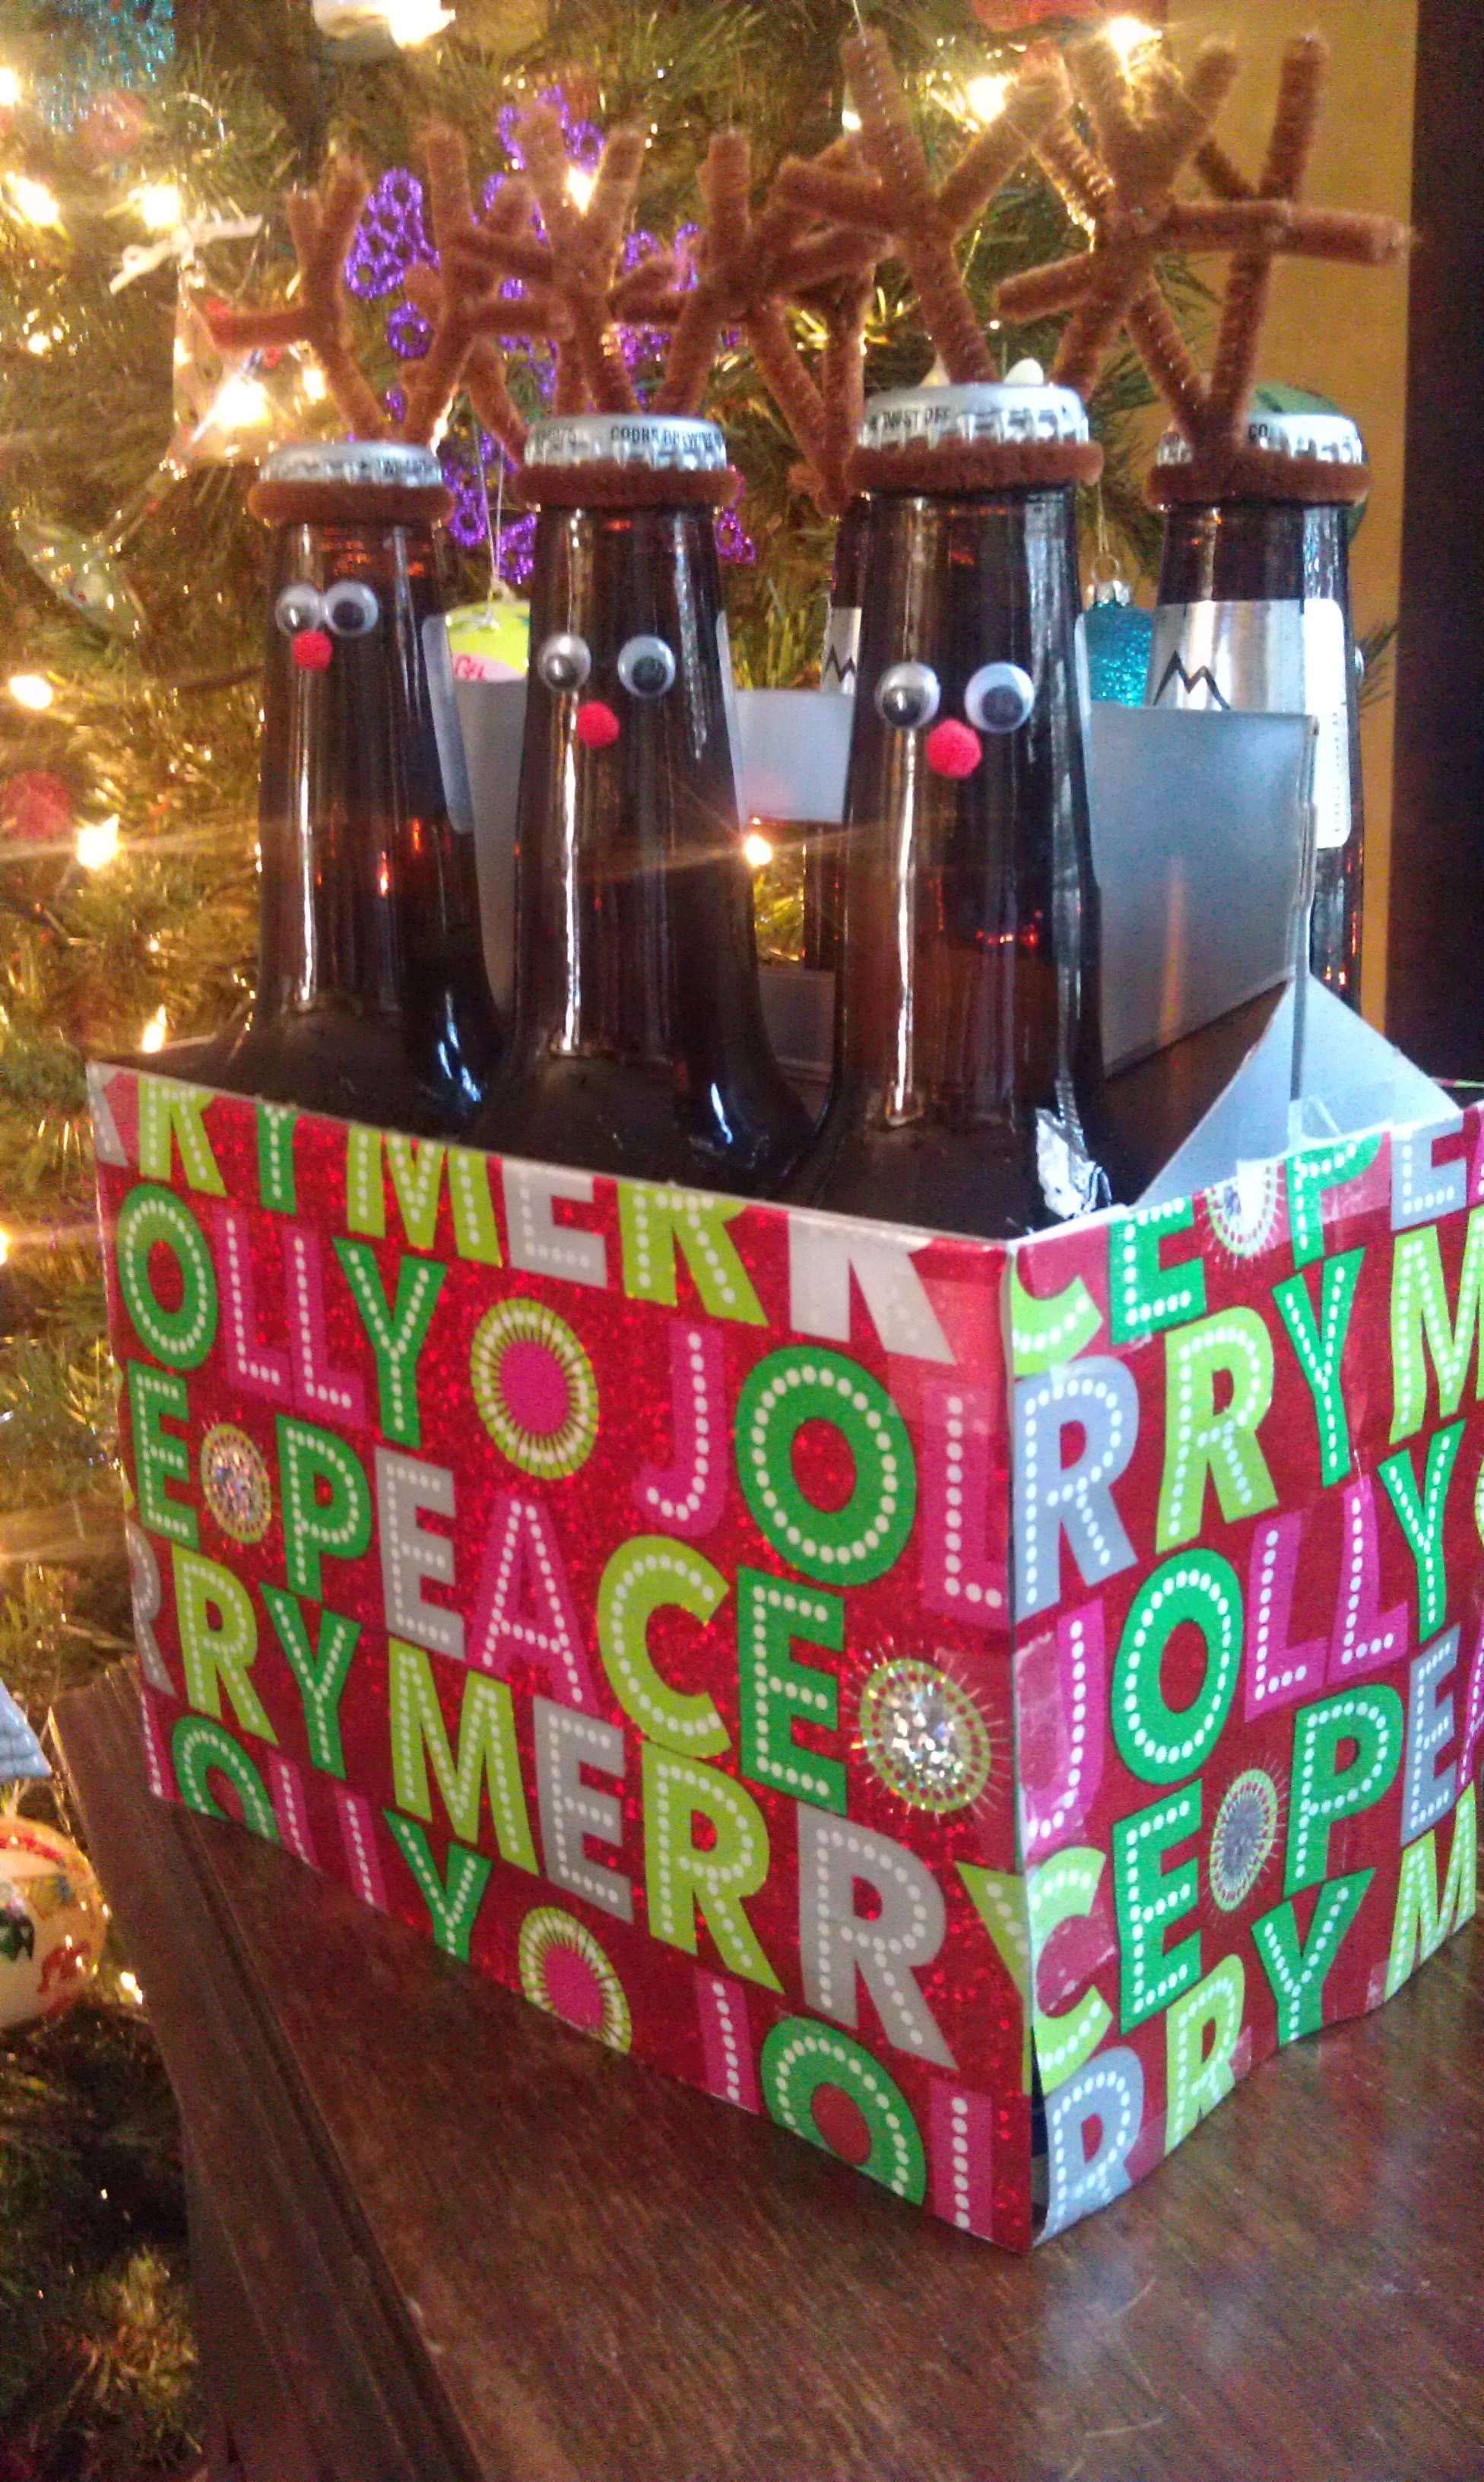 Reindeer Beer Http Kathleen S S S S S J I Think Im Going To Do This For Either Dad Or Jamie Reindeer Beer Christmas Gifts Holiday Fun